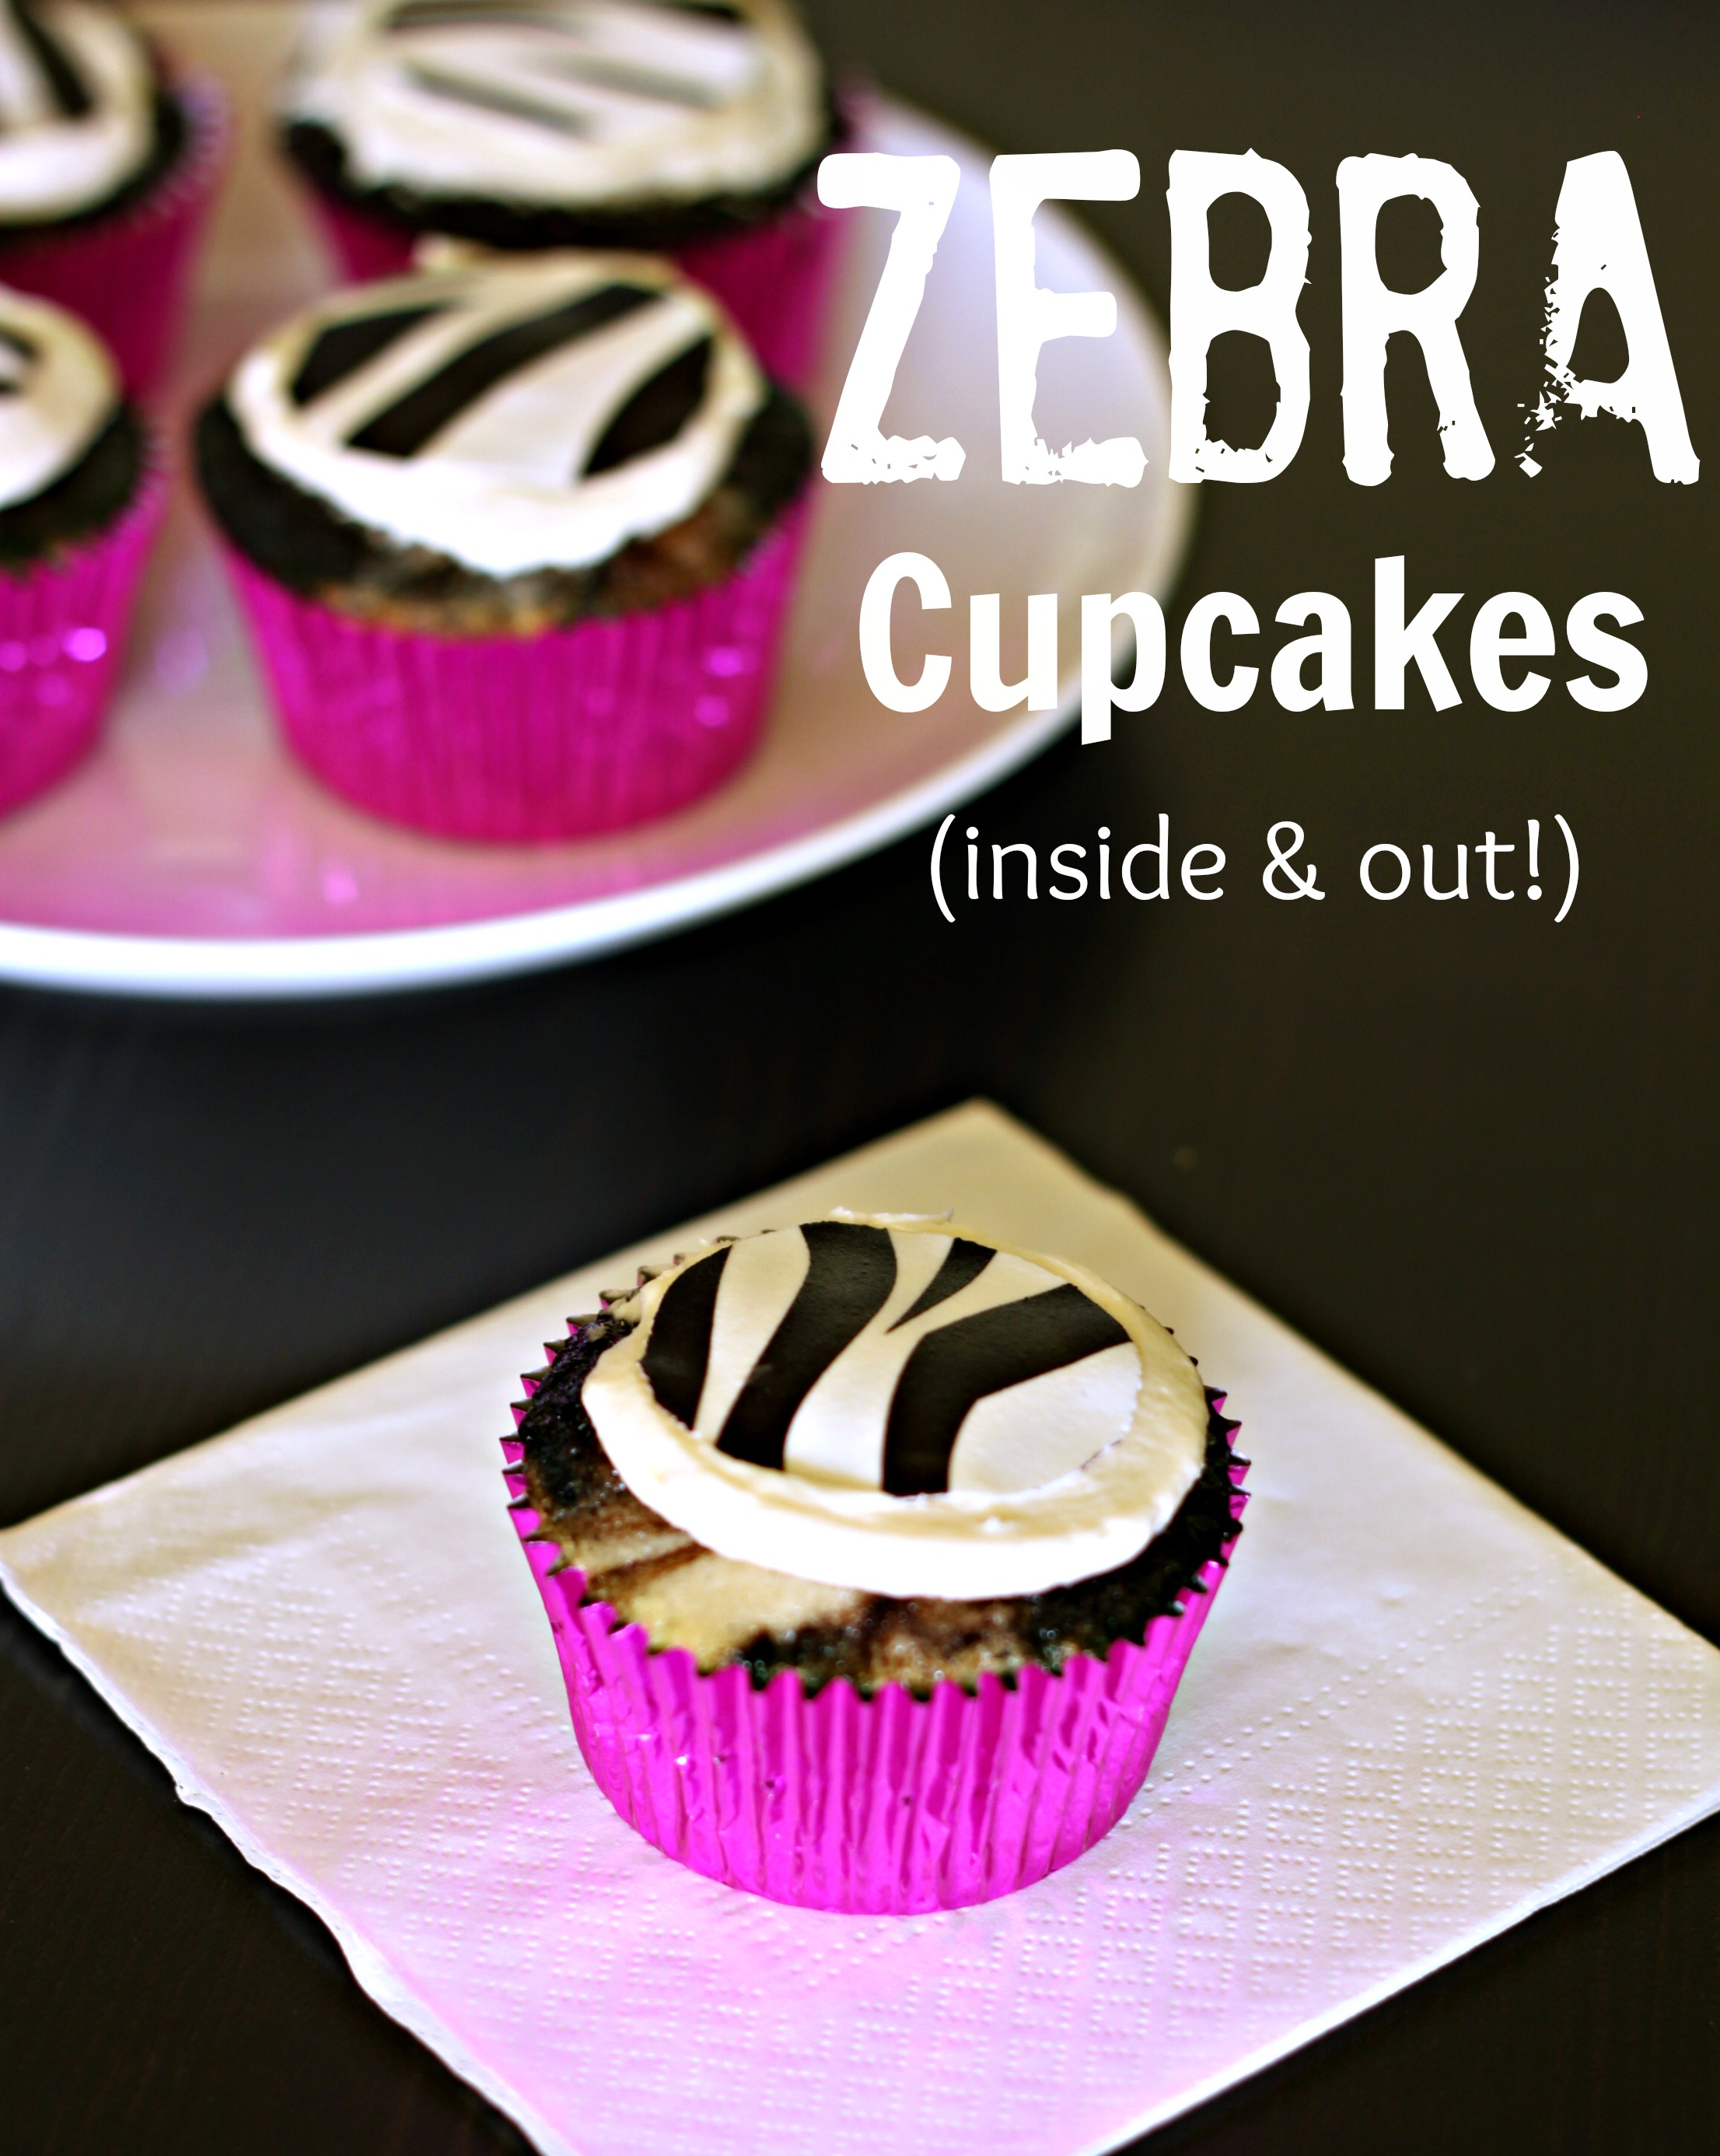 Zebra Cupcakes (inside & out!)